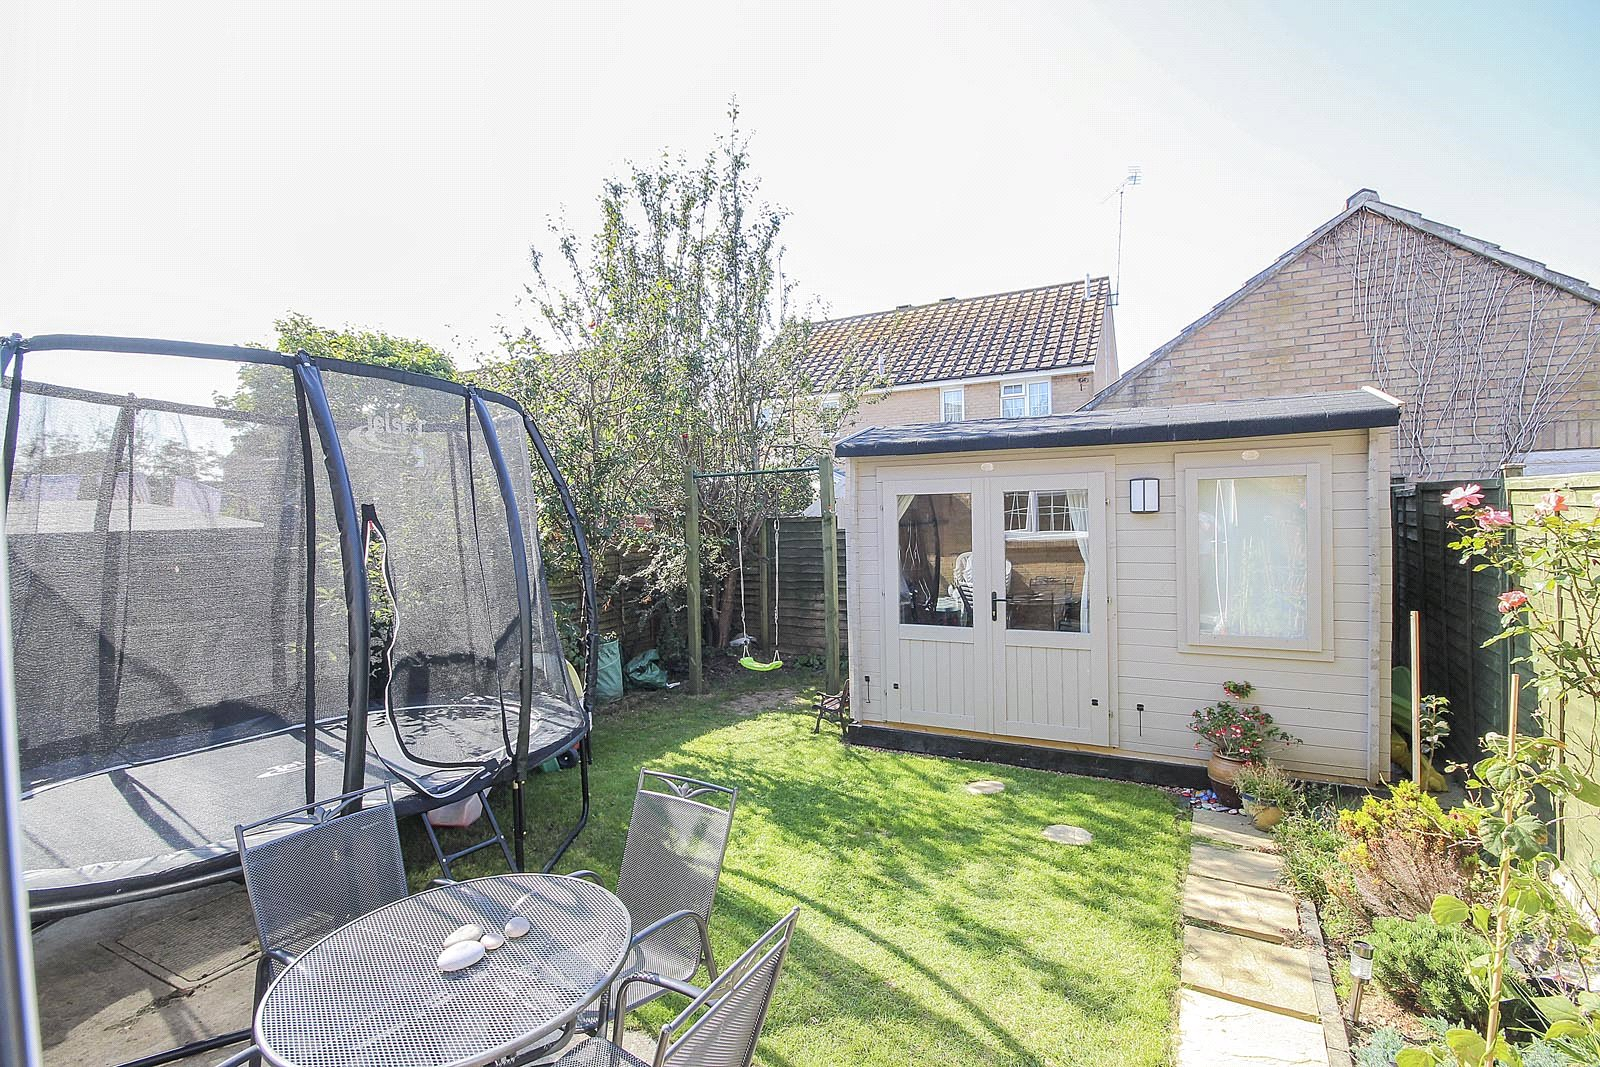 3 bed house for sale in Littlehampton, BN17 6RJ  - Property Image 11